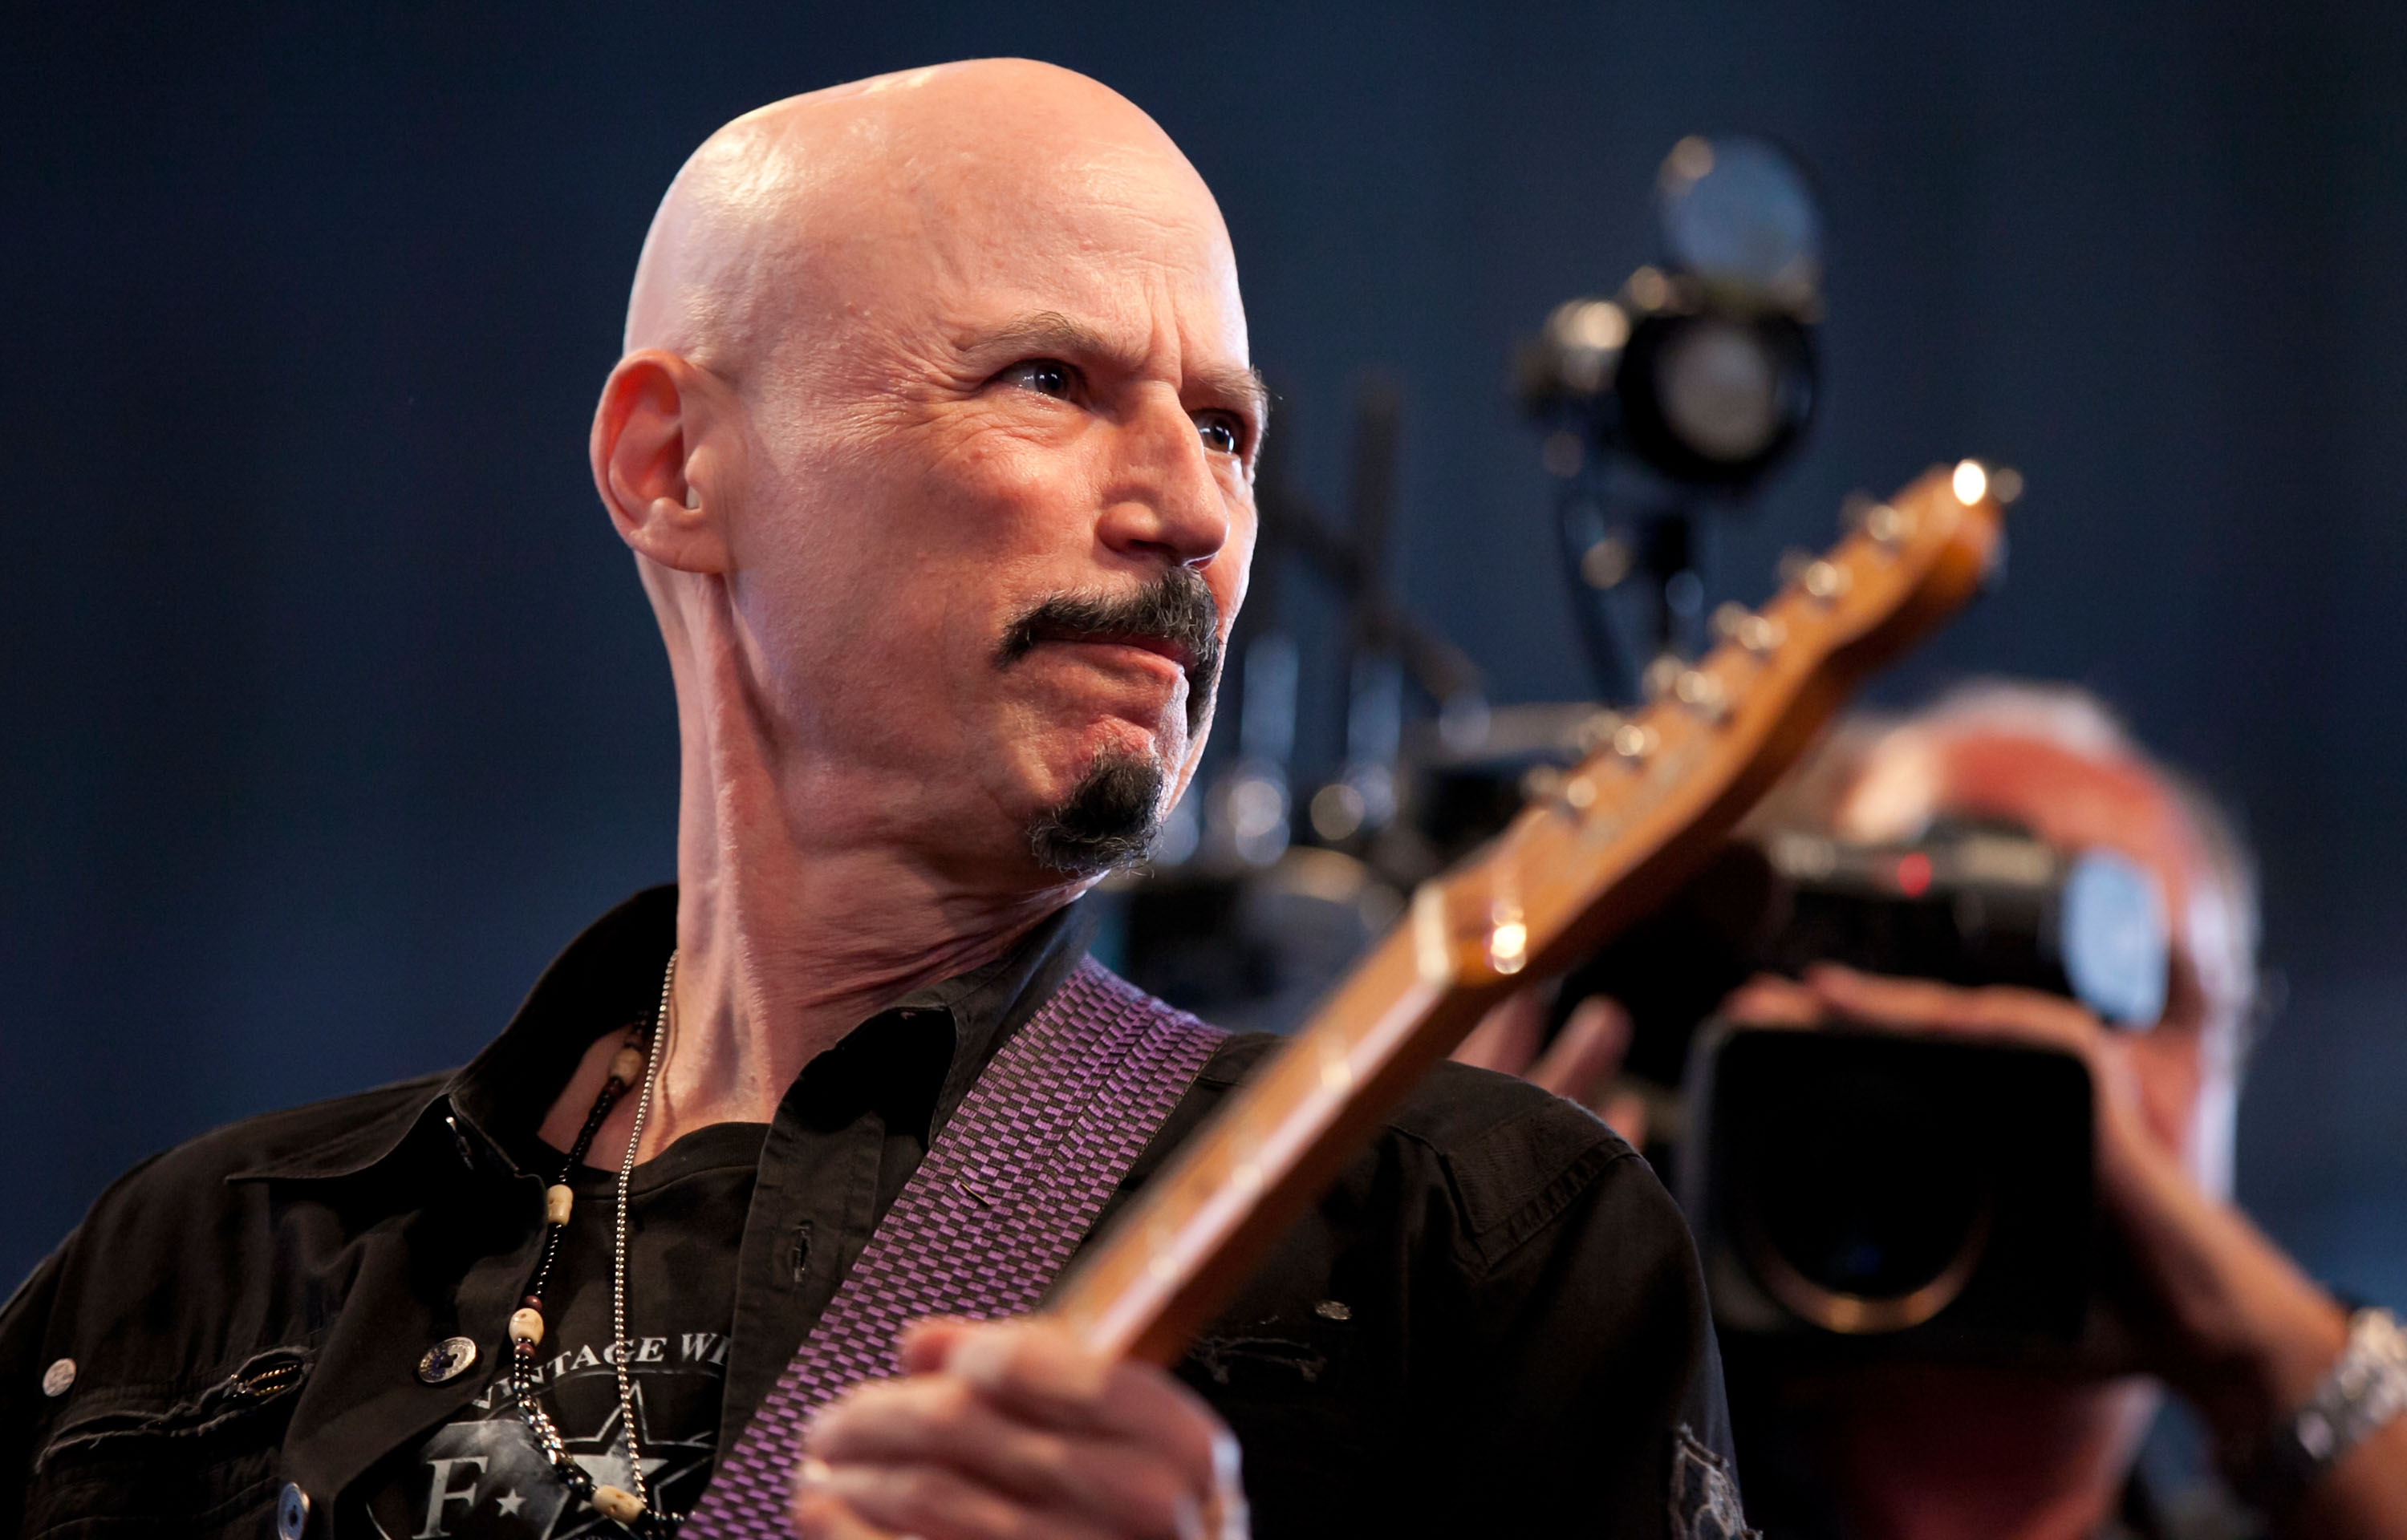 Bob Kulick, Kiss guitarist and Spongebob songwriter, dies at 70